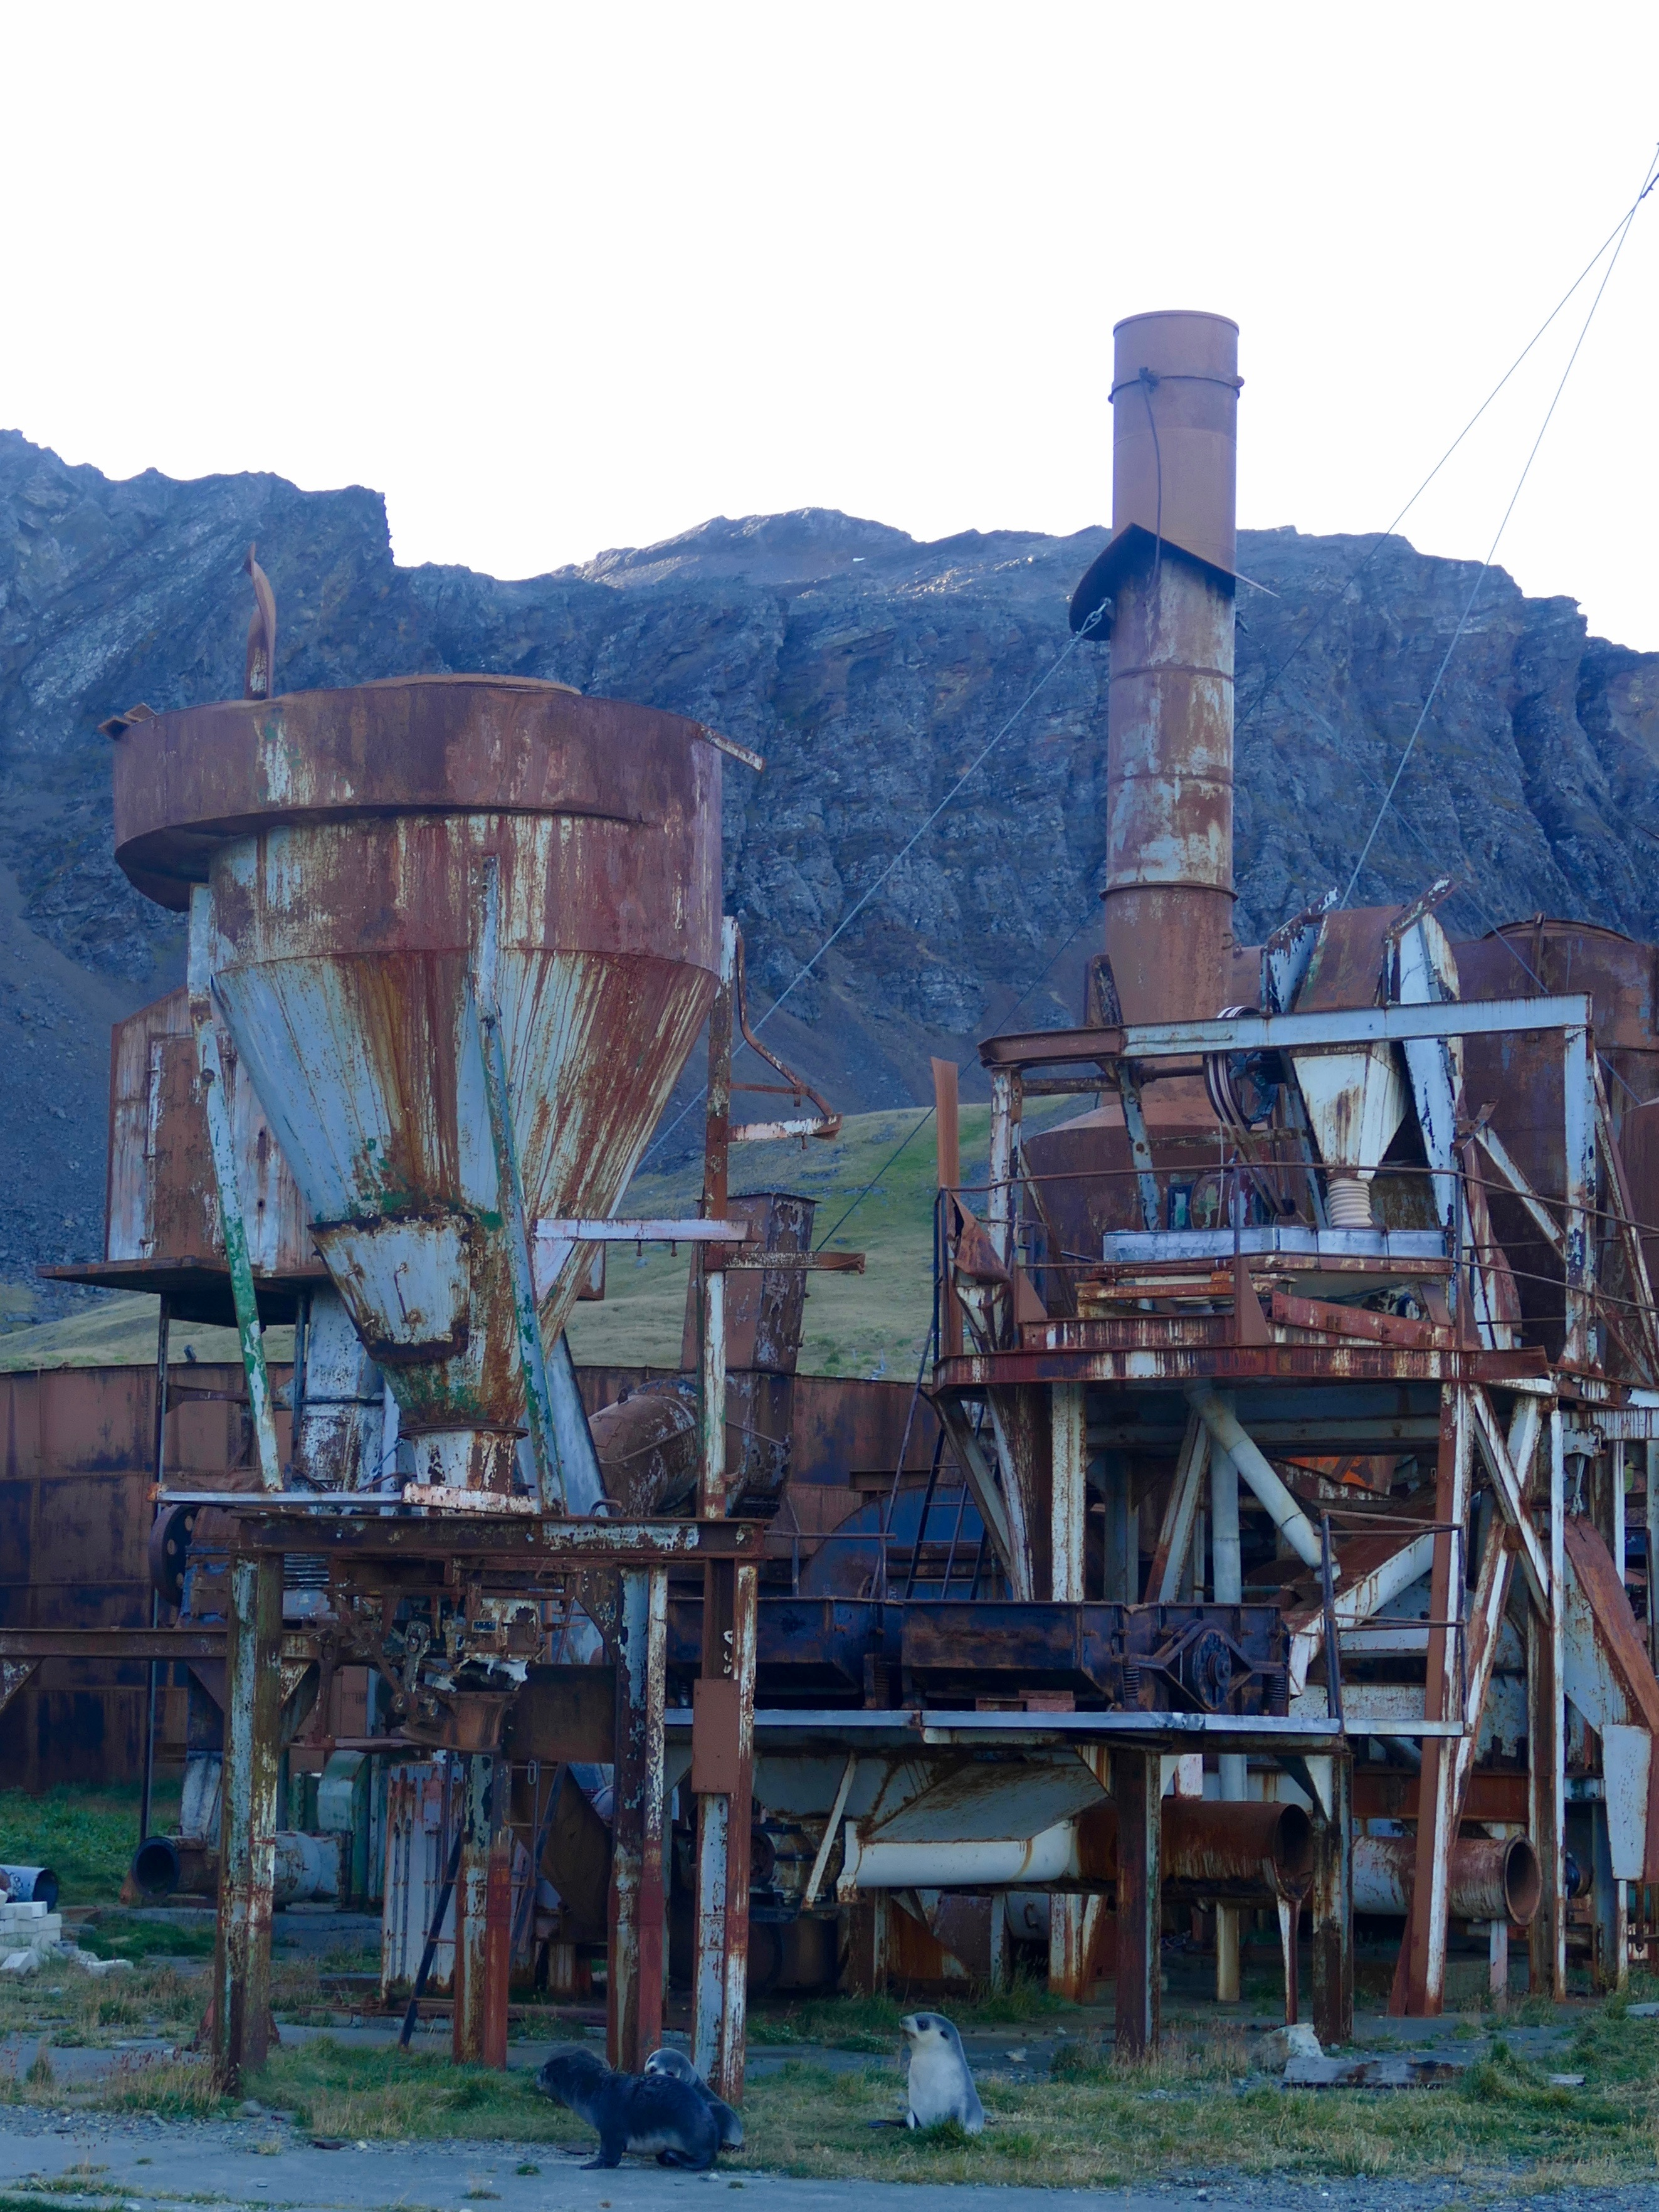 Fur seals and whaling factory in Grytviken